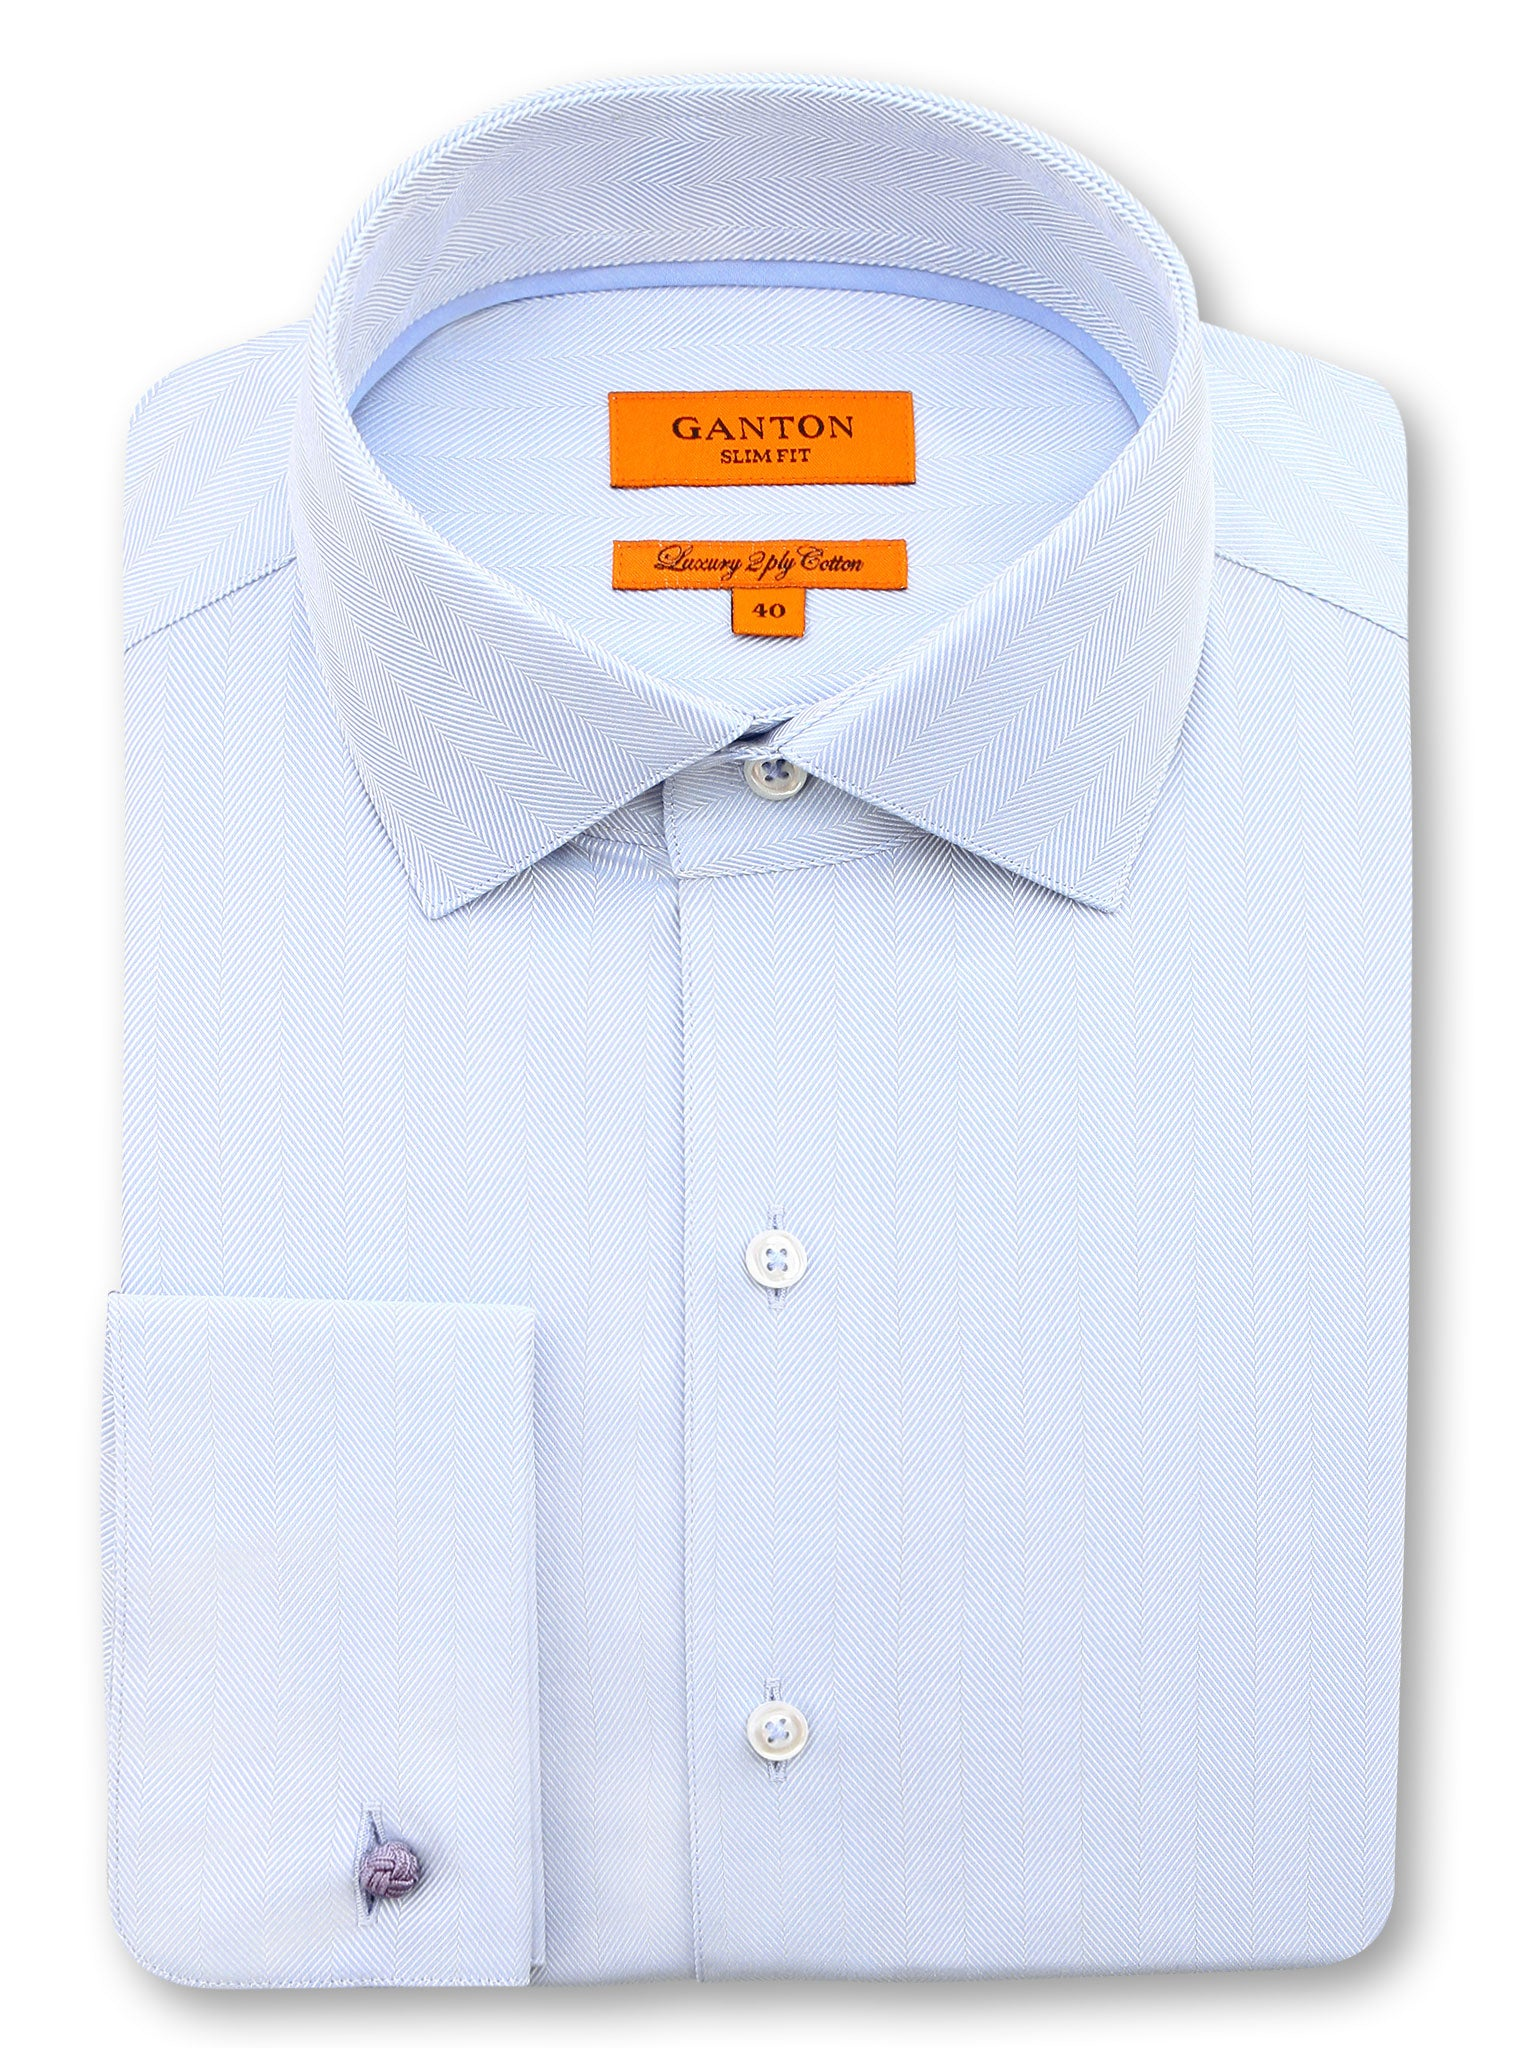 All Light Blue Textured Slim Fit Bryson Luxury 2 Ply Cotton Shirt